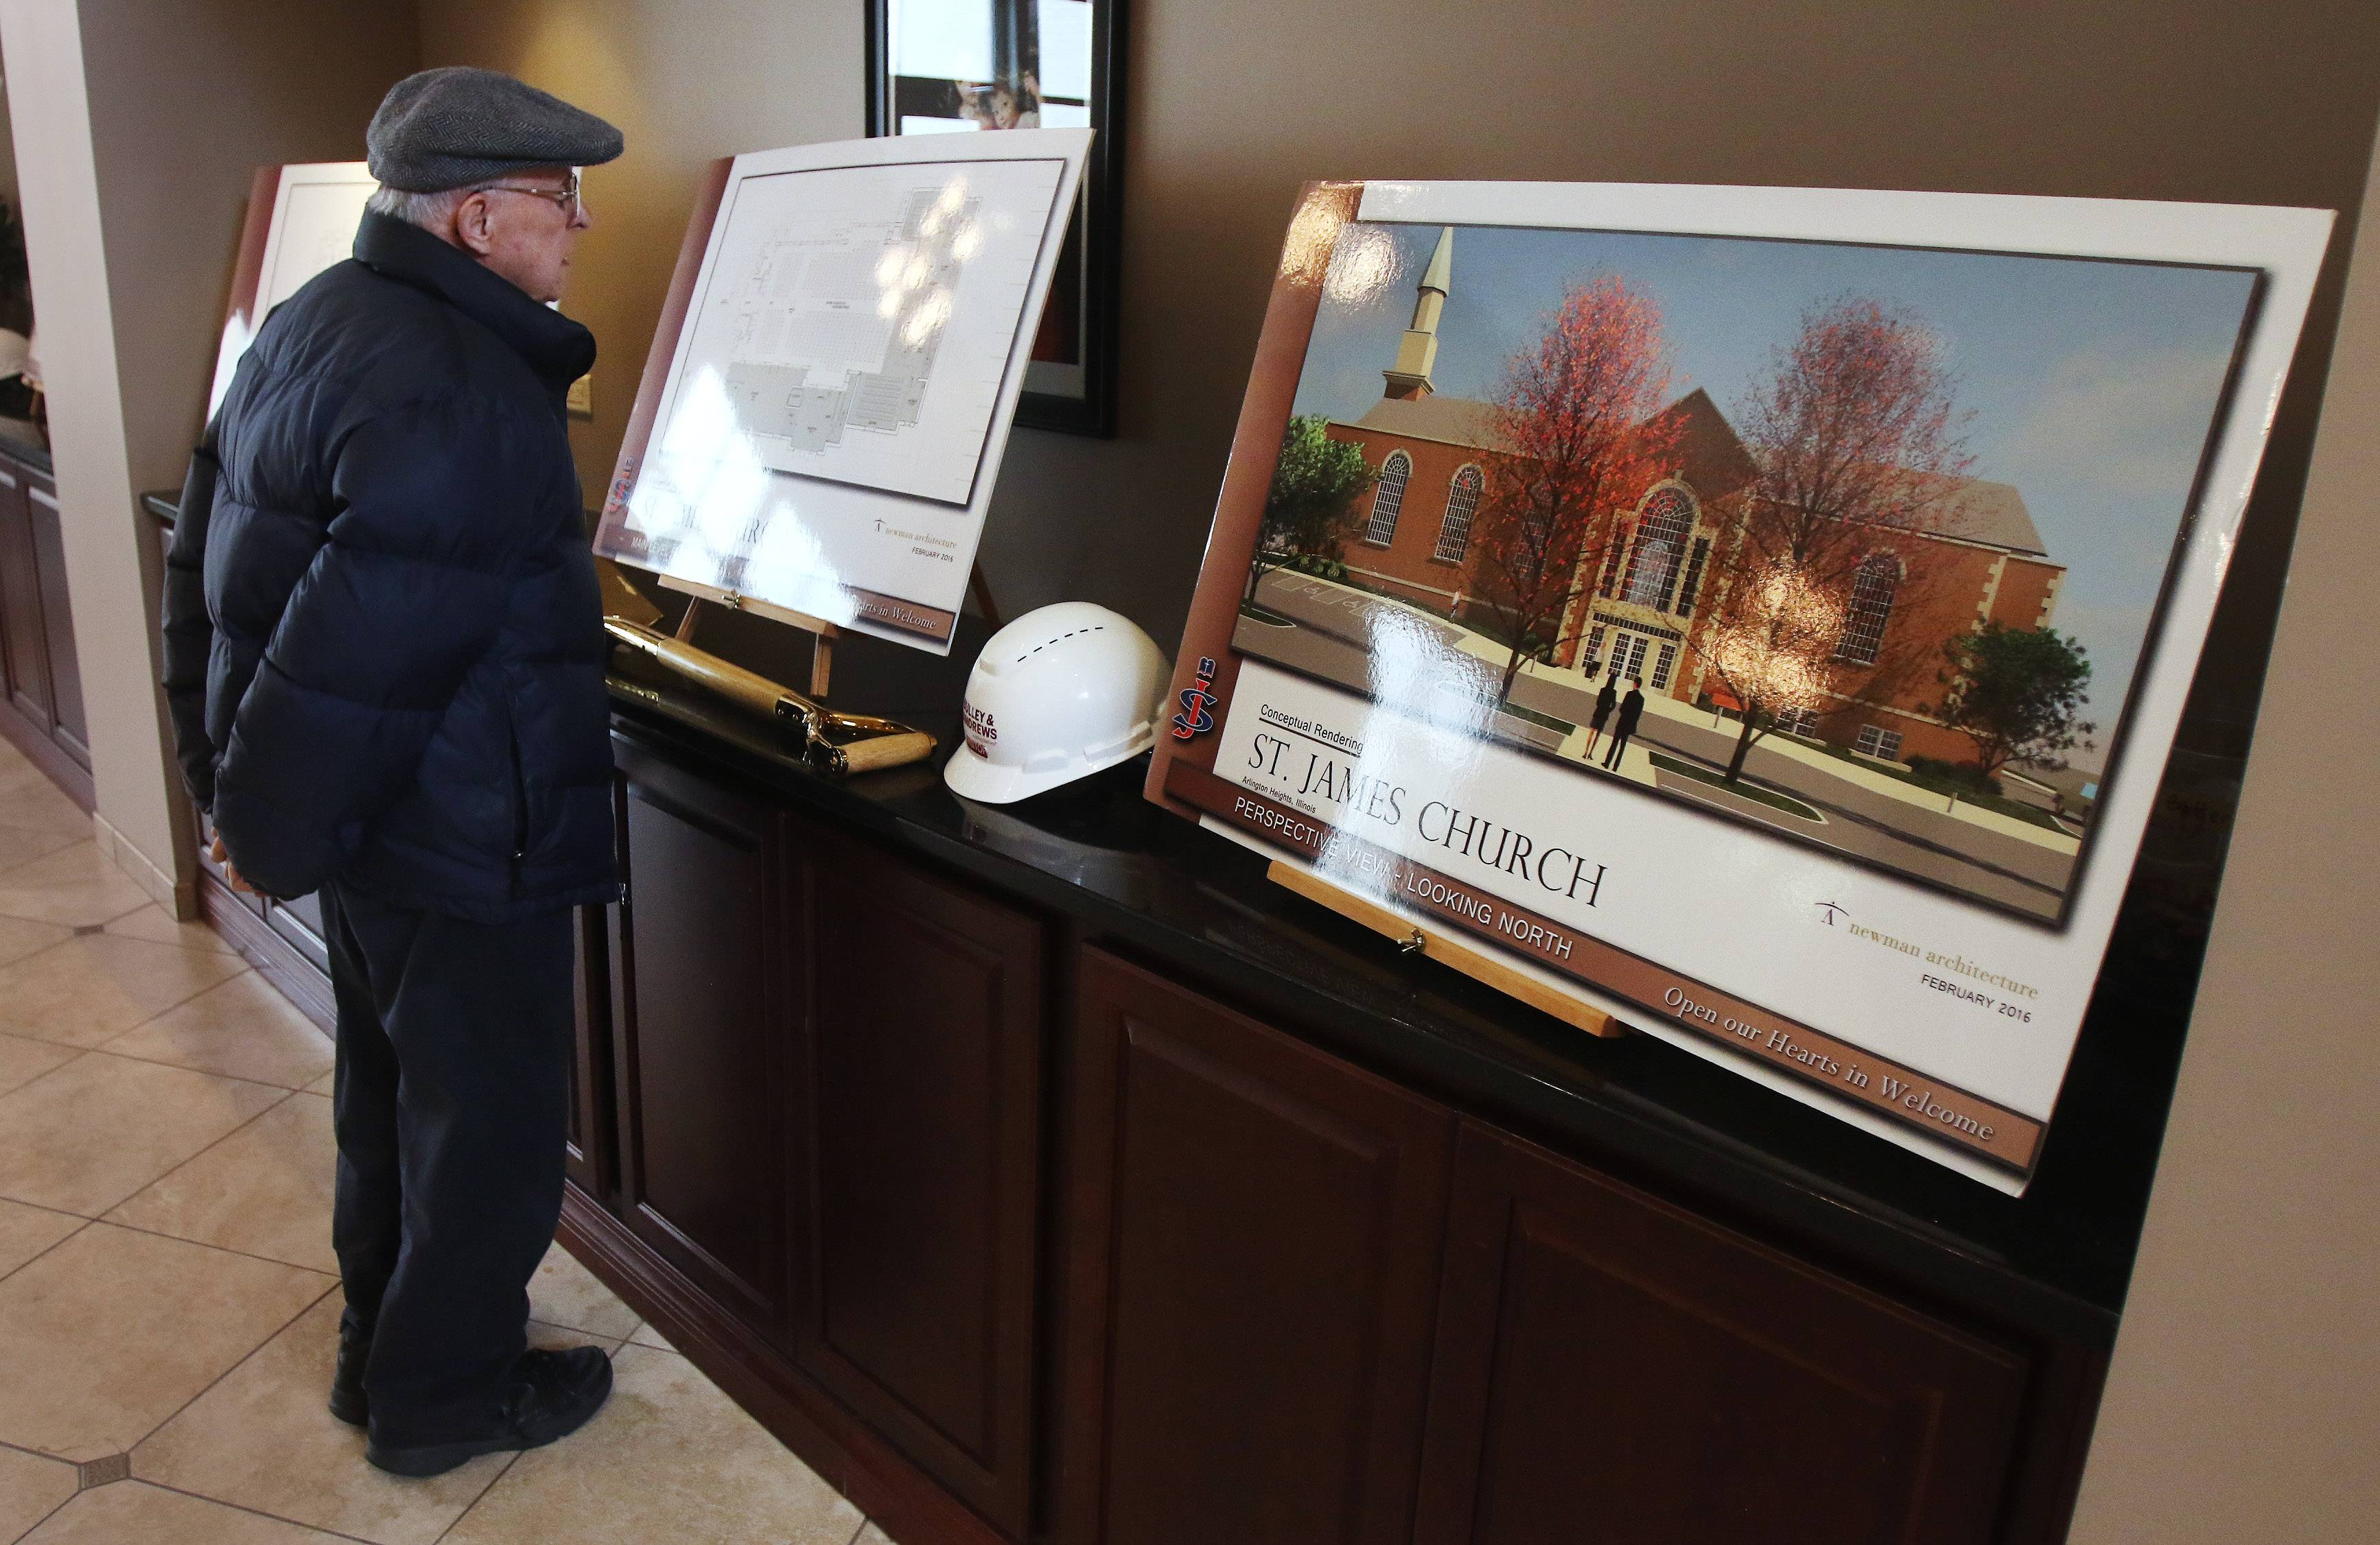 Arlington Heights resident Stan Szott looks at posters illustrating the expansion project that officially got underway Sunday at St. James Catholic Church in Arlington Heights.